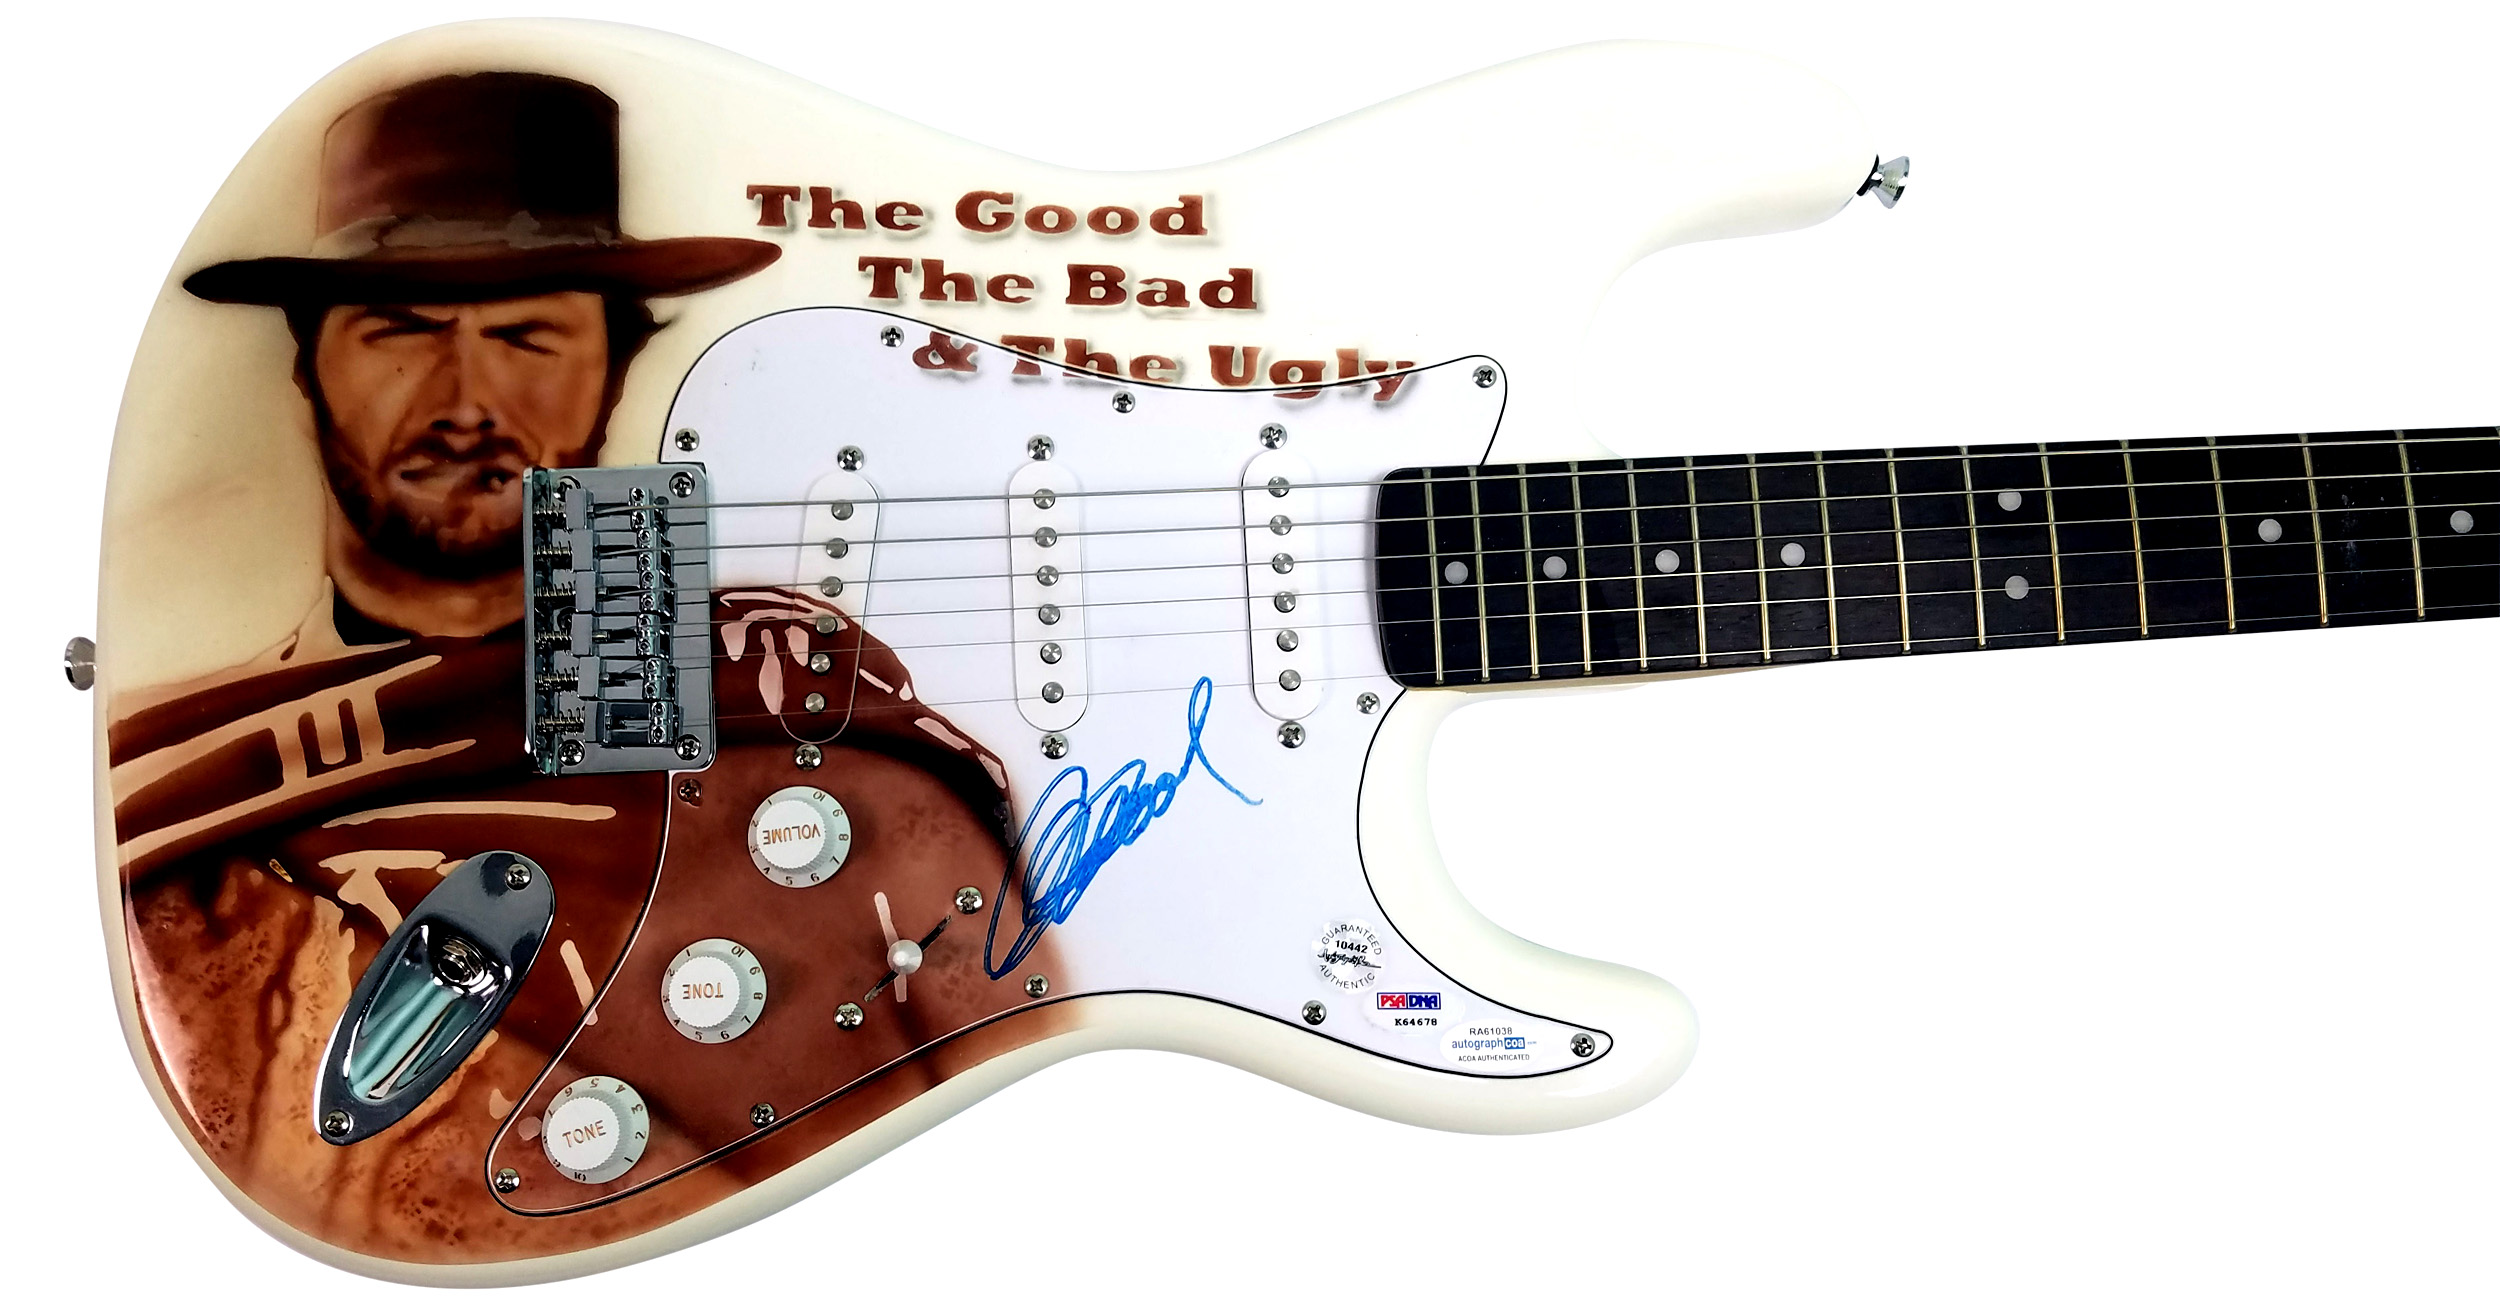 Clint Eastwood Autographed Good Bad Ugly Movie Poster Guitar ACOA PSA